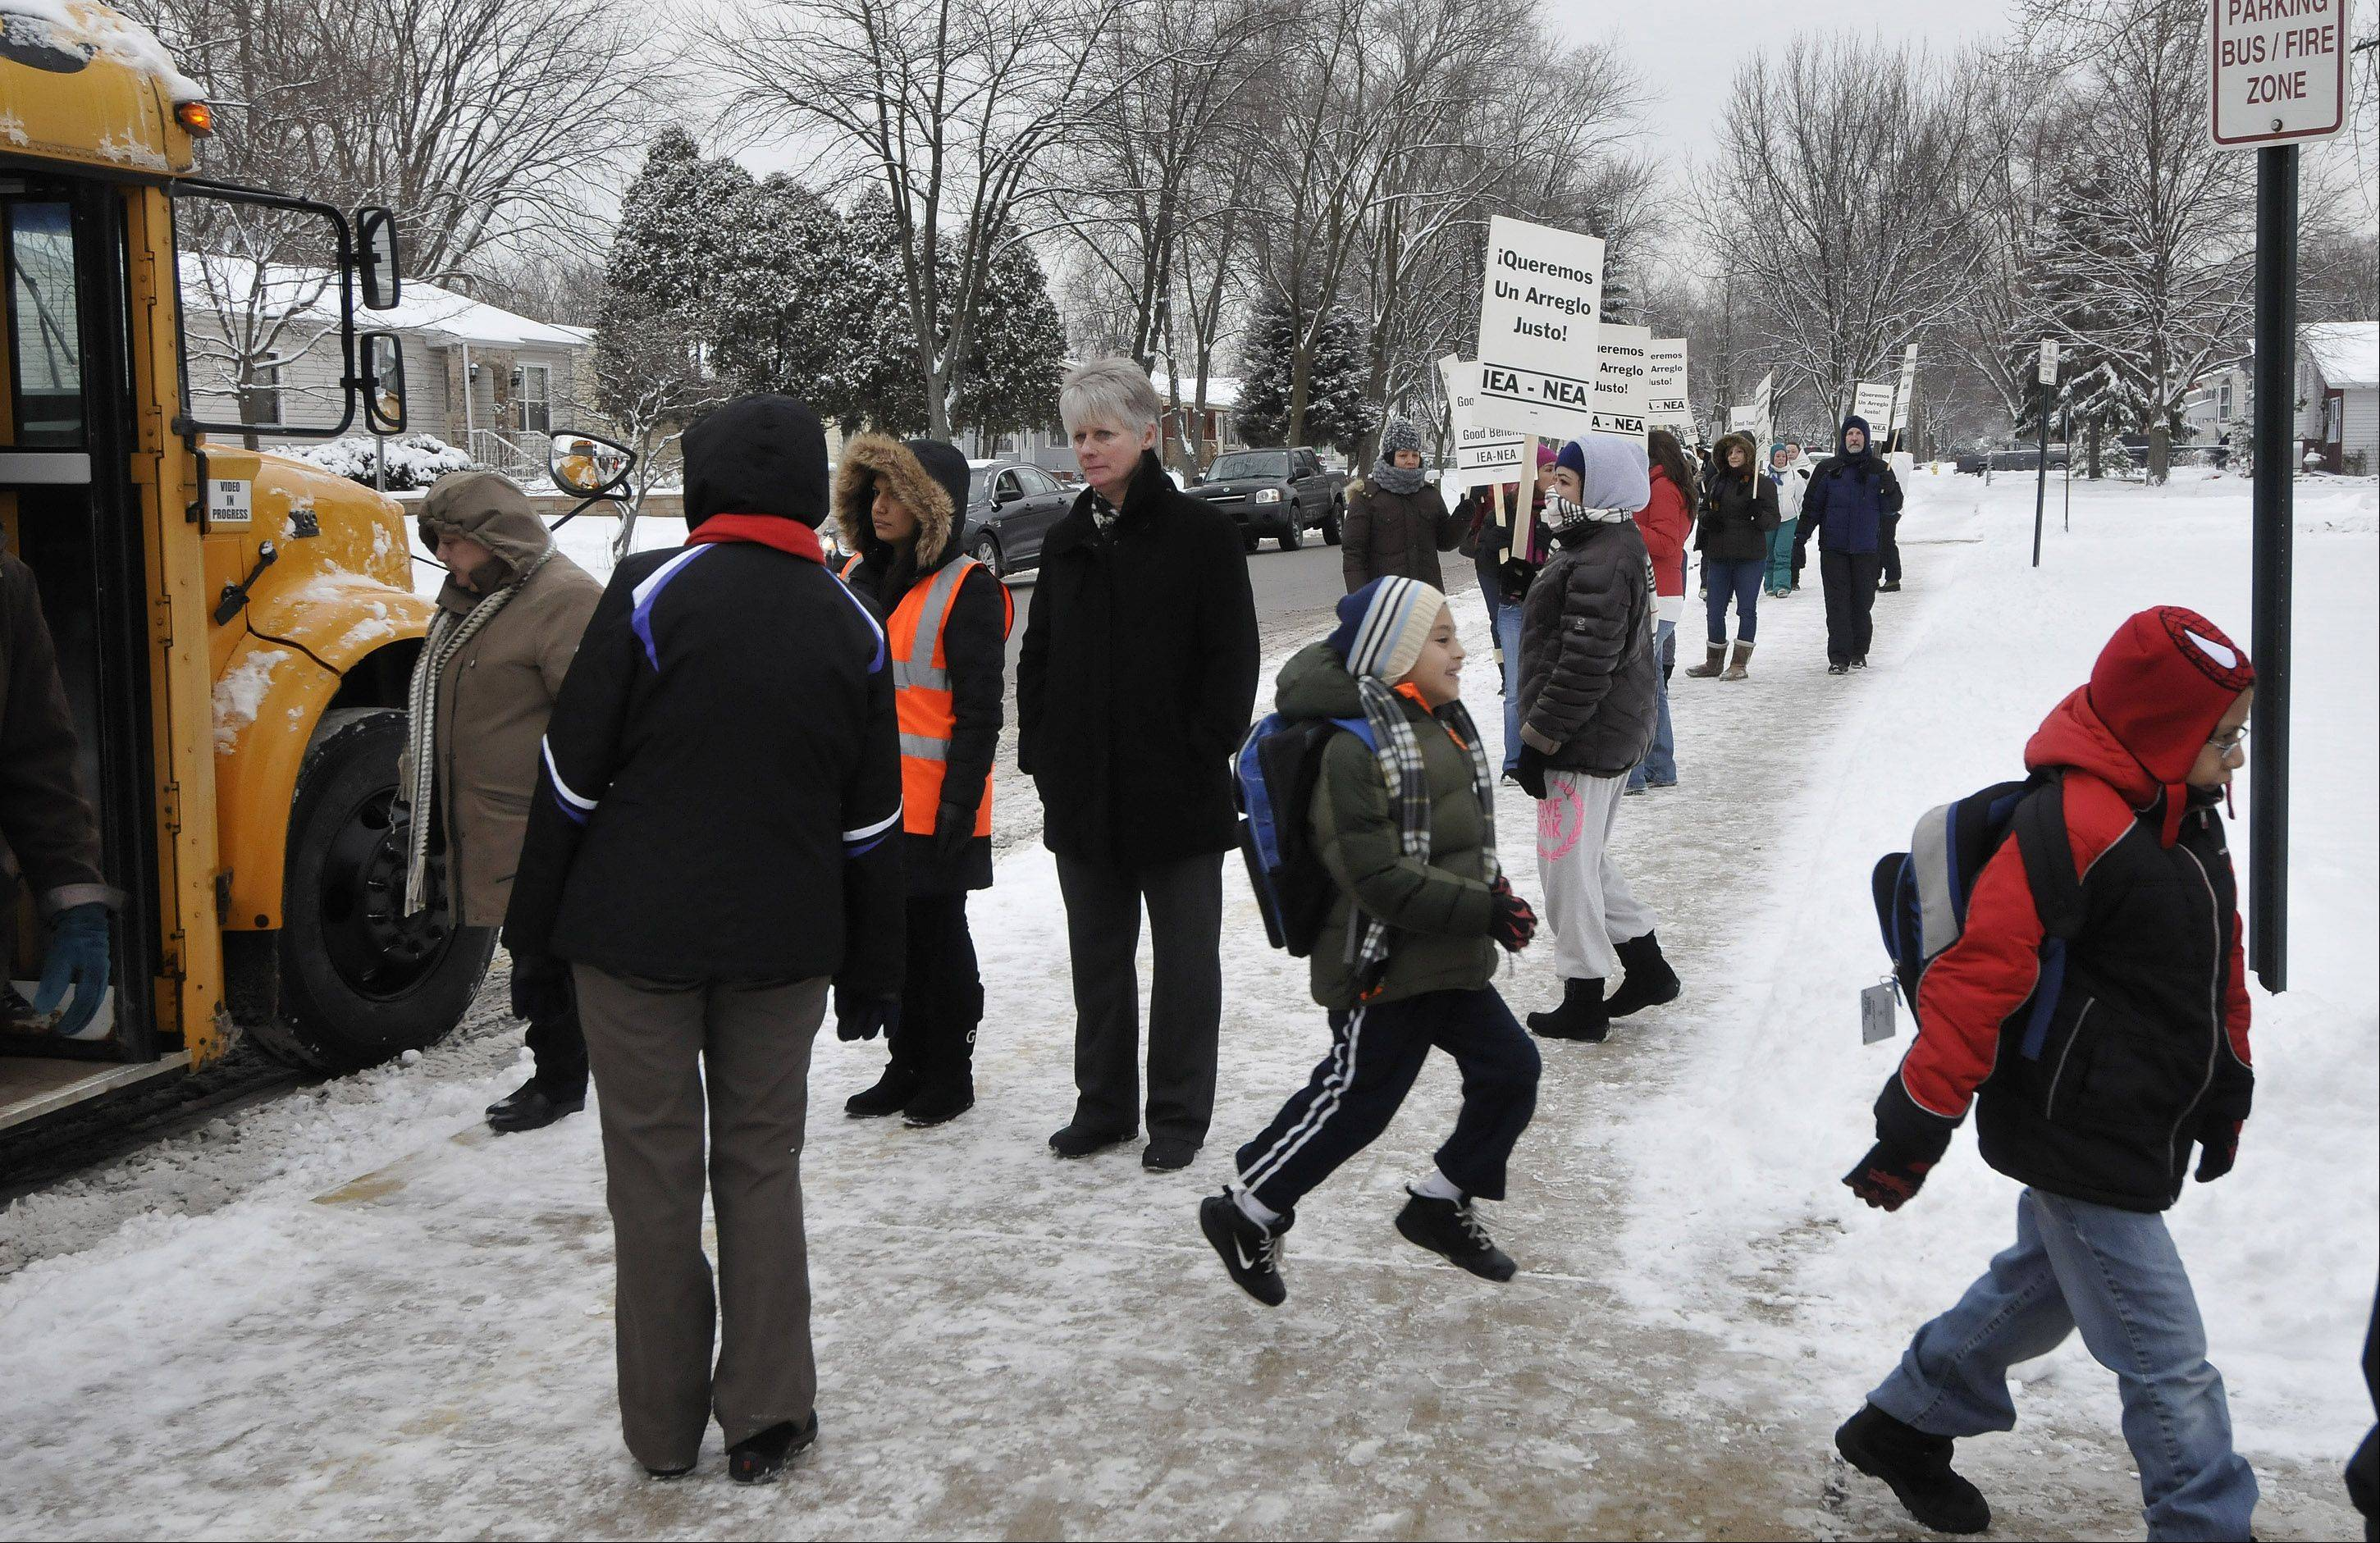 Students are escorted into Pioneer Elementary School Monday to attend alternative programs while teachers in West Chicago Elementary District 33 remain on strike.